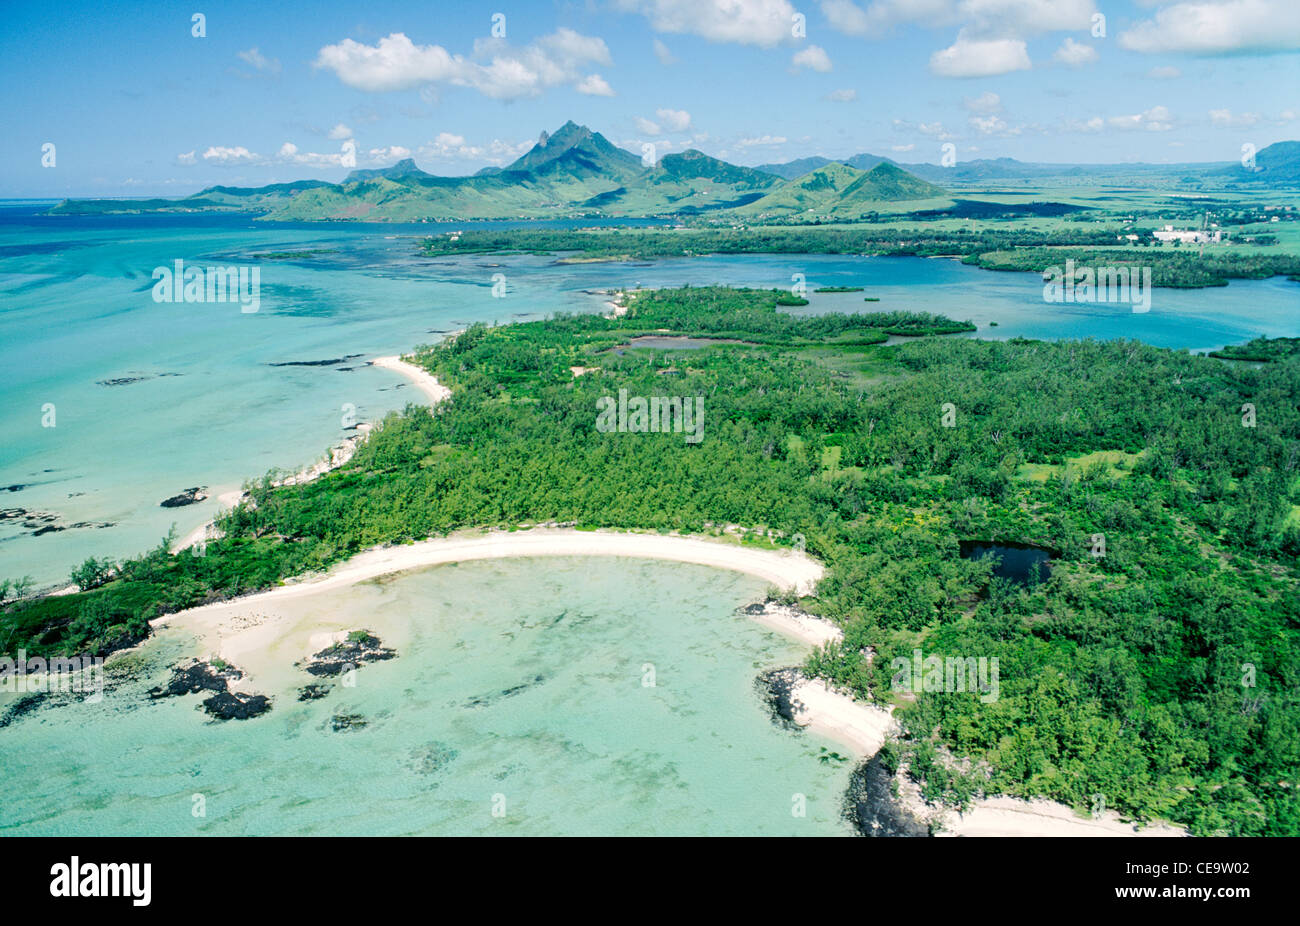 SW over beaches of Isle Aux Cerfs, Beau Rivage, toward Mt. Bambou and Lion Mt. in Domaine du Chasseur, east coast - Stock Image